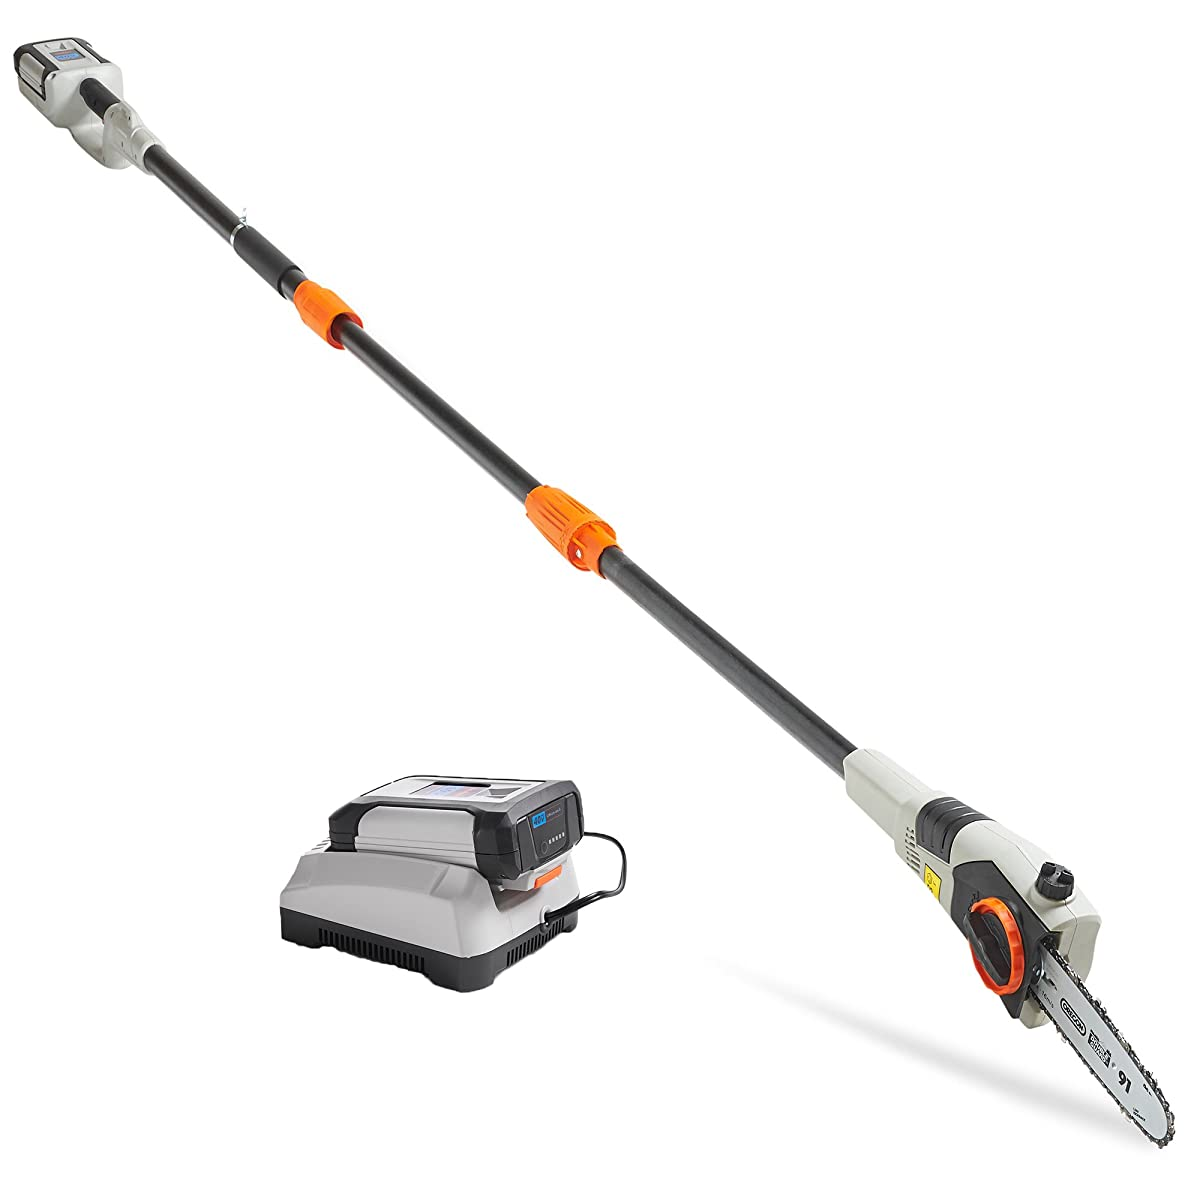 "VonHaus 40V Max 8"" Cordless Pole Saw with Telescopic Pole for Cutting Branches - 4.0Ah Lithium-Ion Battery and Charger Kit Included"